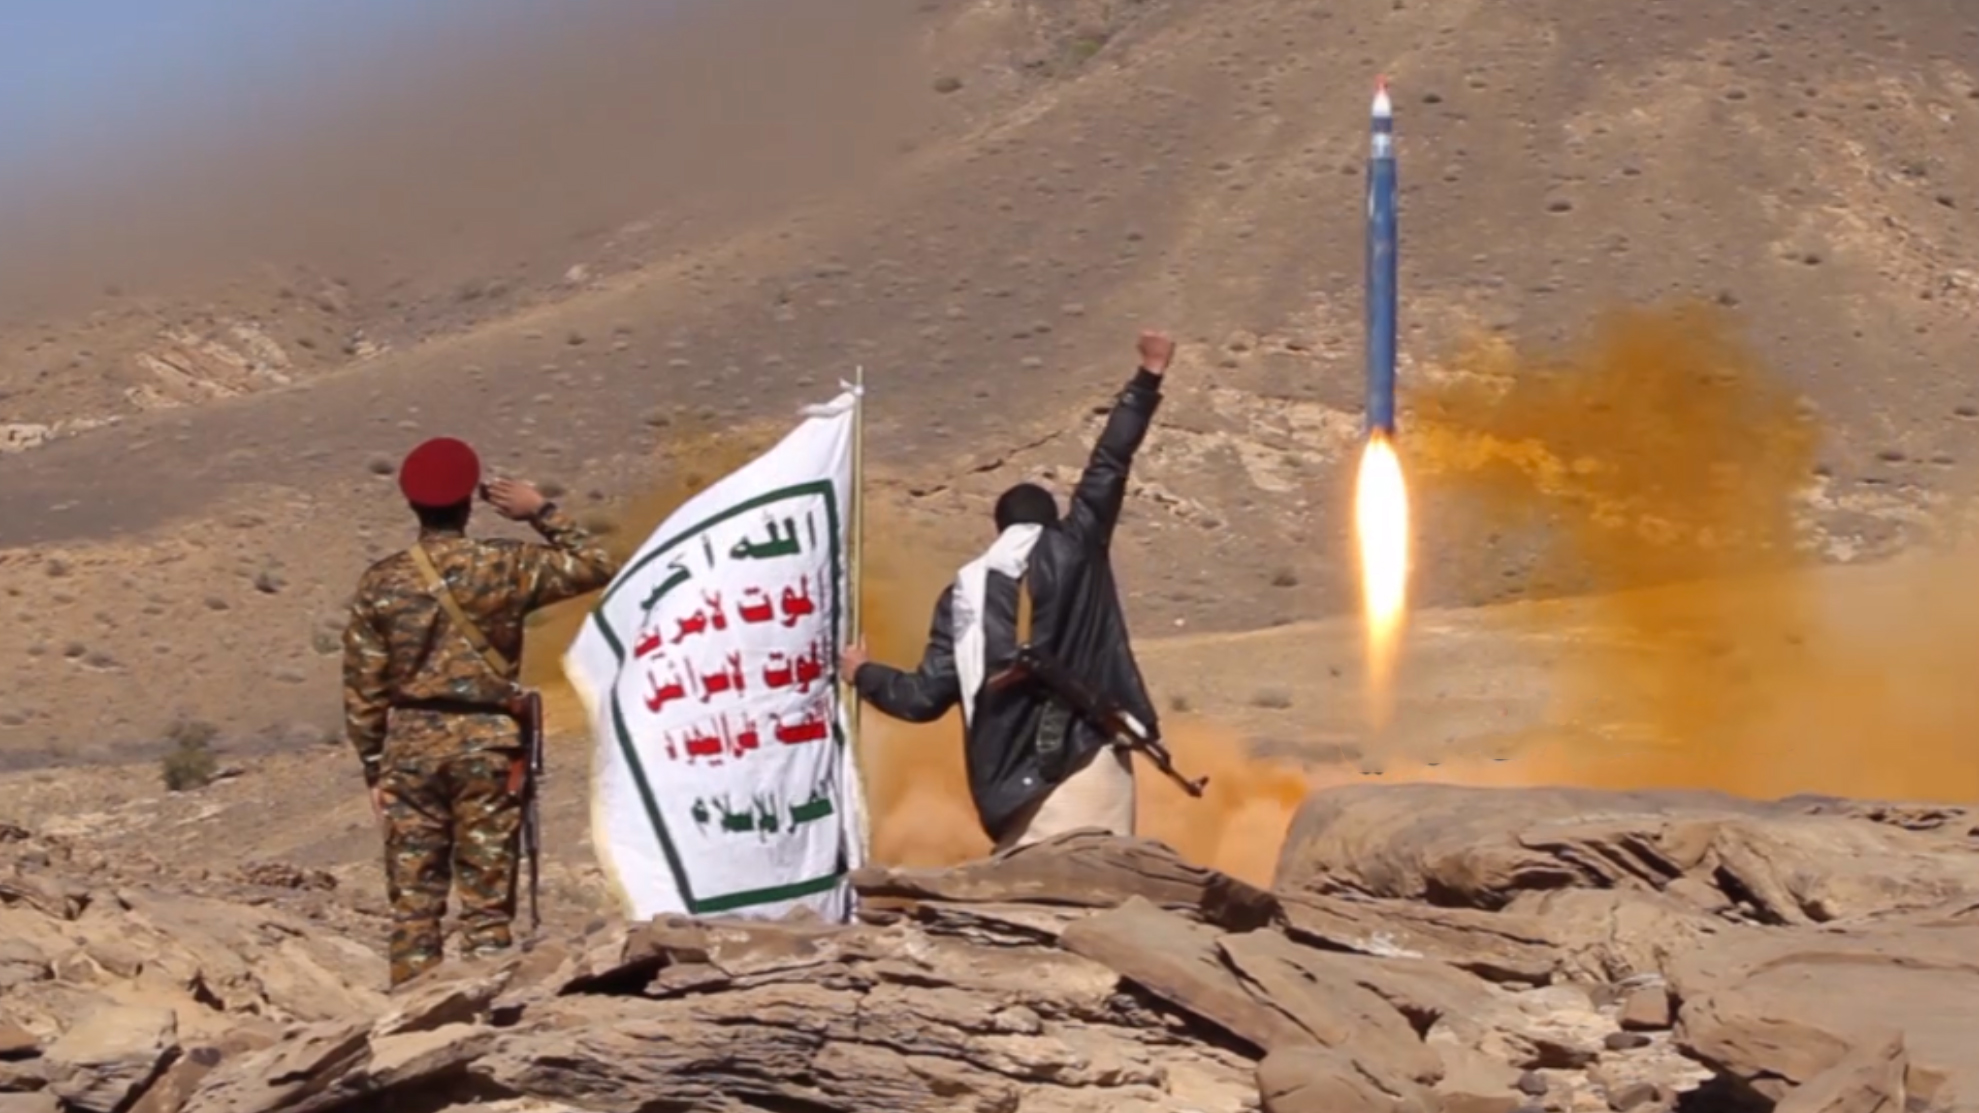 Houthis Struck 'High-Value Target' In Saudi Capital With Ballistic Missile, Drones